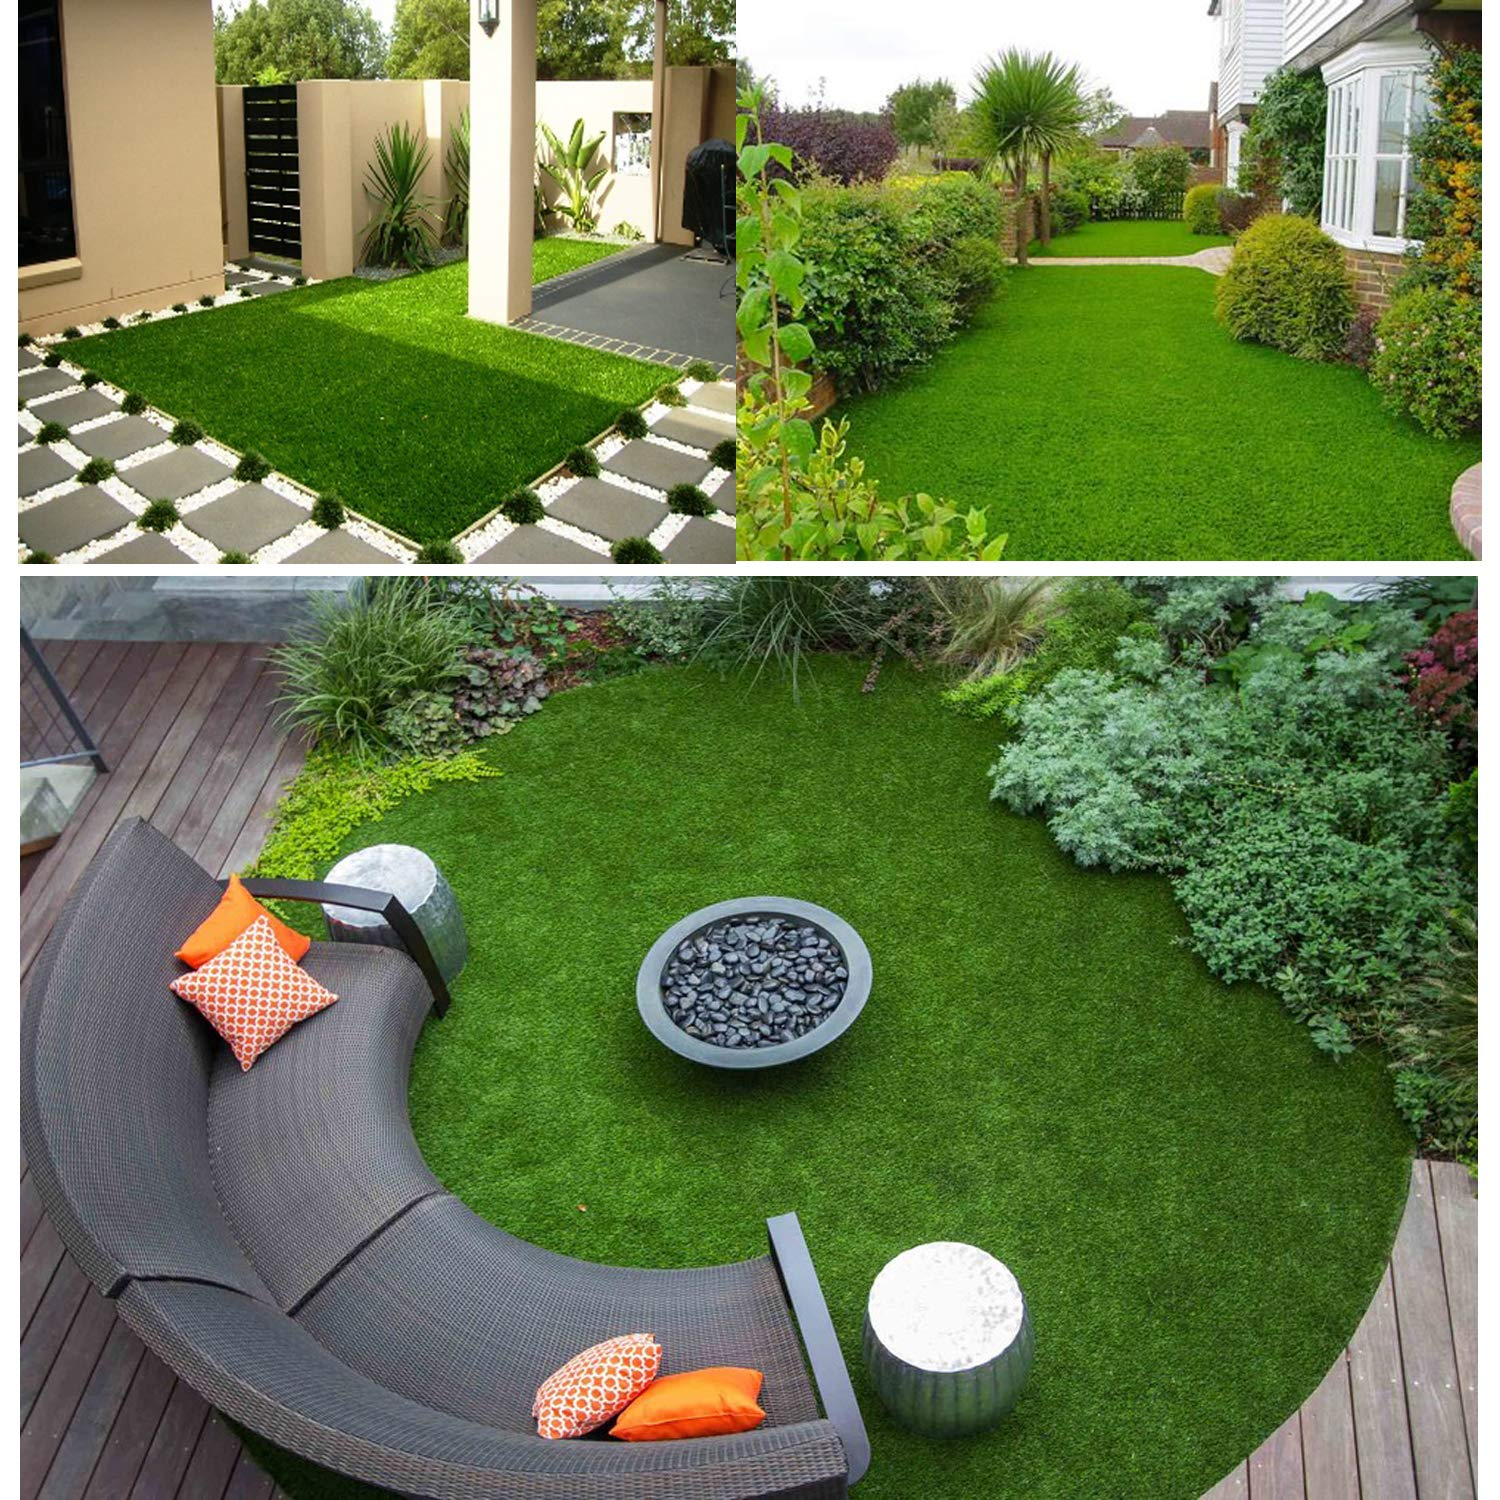 Amazon.com: Scorbio Artificial Grass Mat Synthetic Grass ...